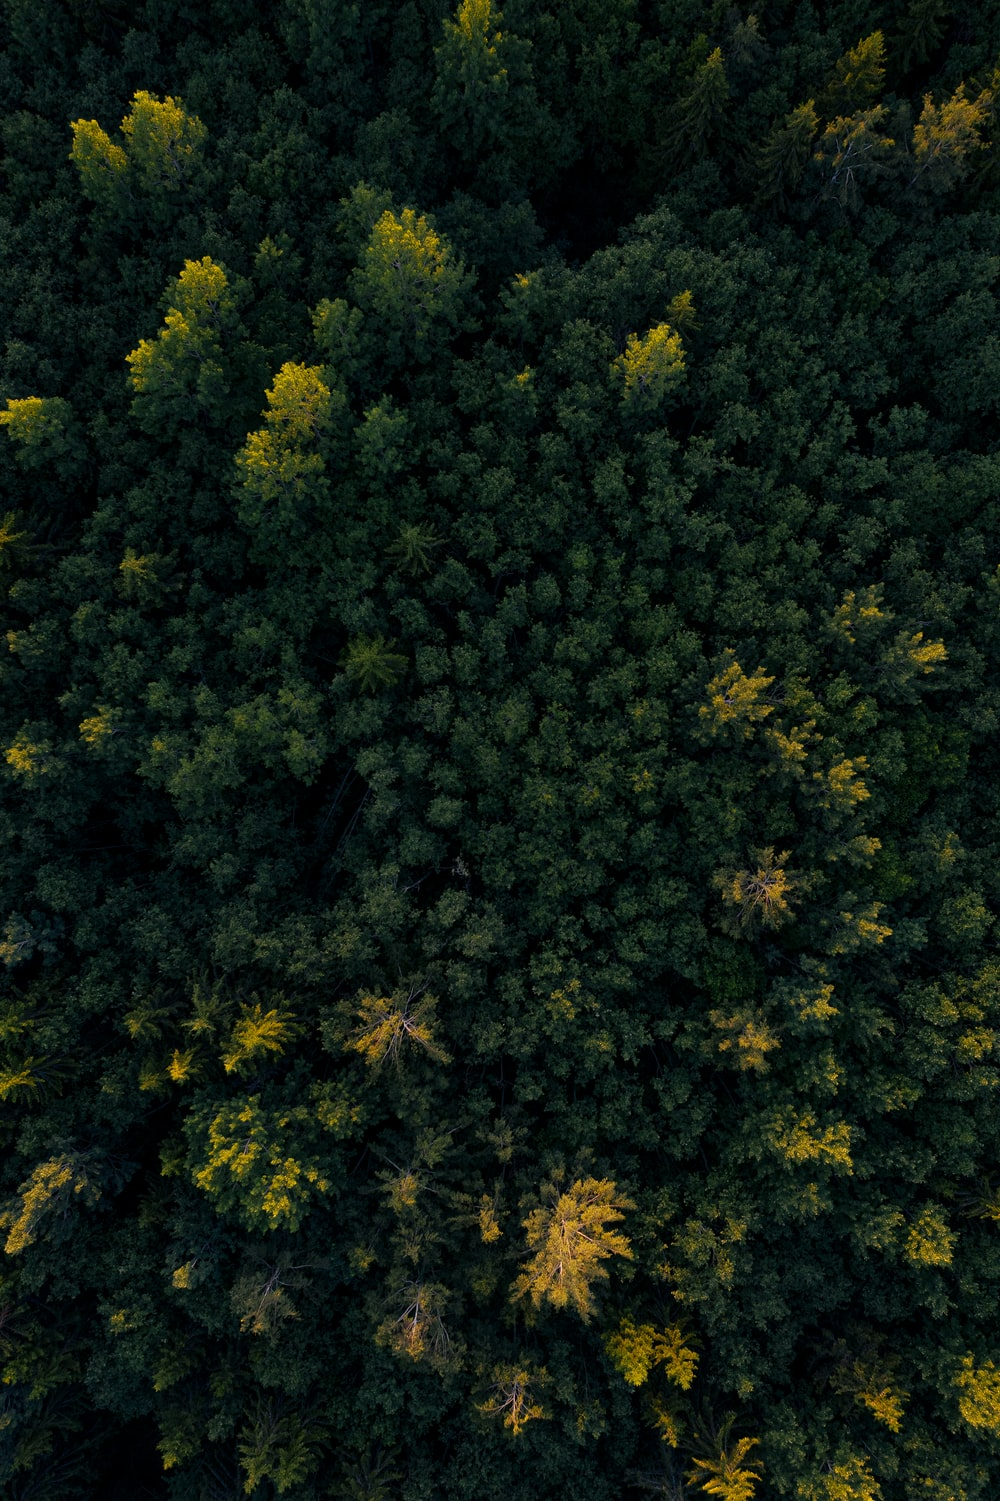 aerial photo of green forest